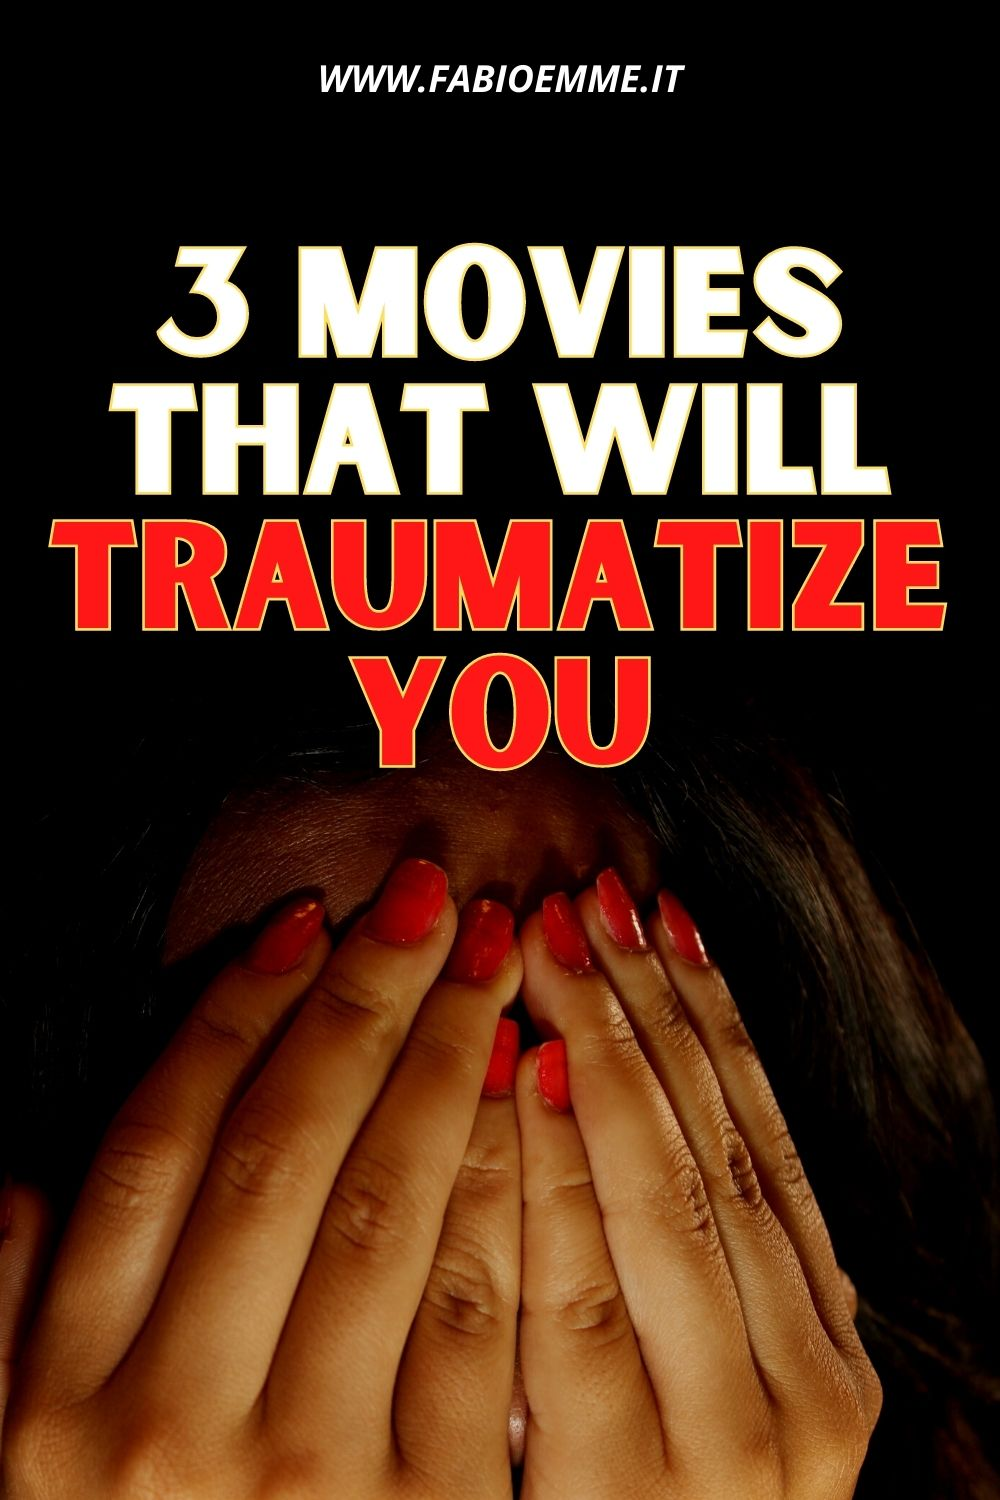 3 Movies that will Traumatize You